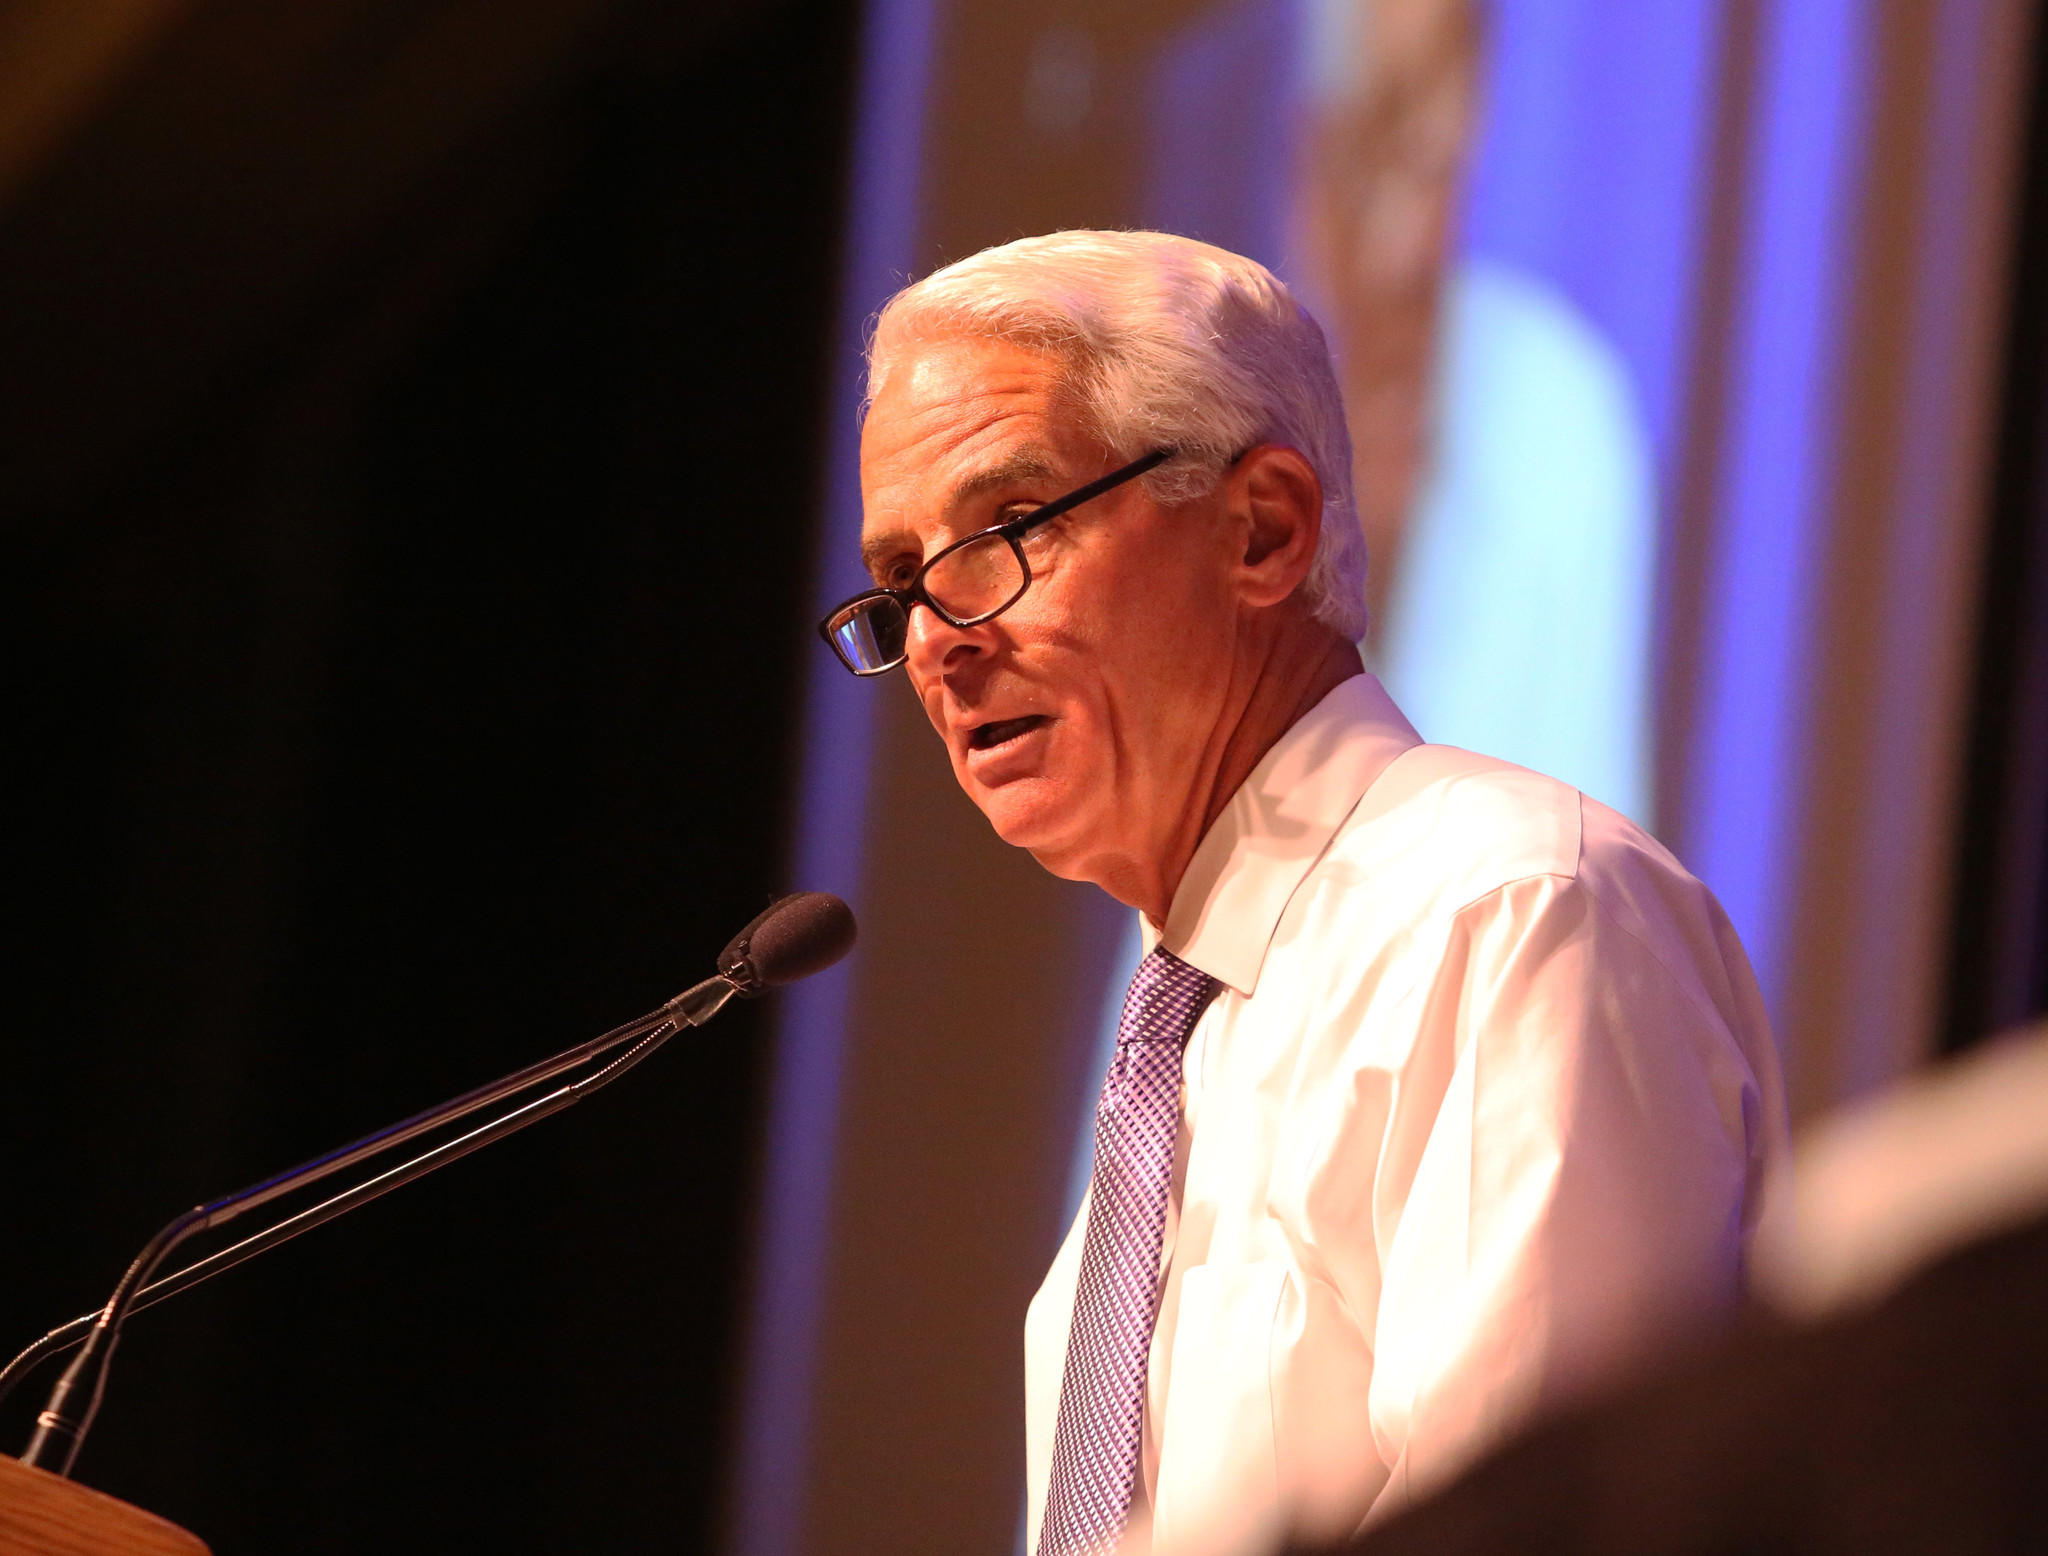 Former Governor Charlie Crist speaks to the Forum Club of the Palm Beaches at the Kravis Center in West Palm Beach. The former Republican governor is currently the leading Democrat trying to unseat incumbent Republican Gov. Rick Scott. Carline Jean, Sun Sentinel